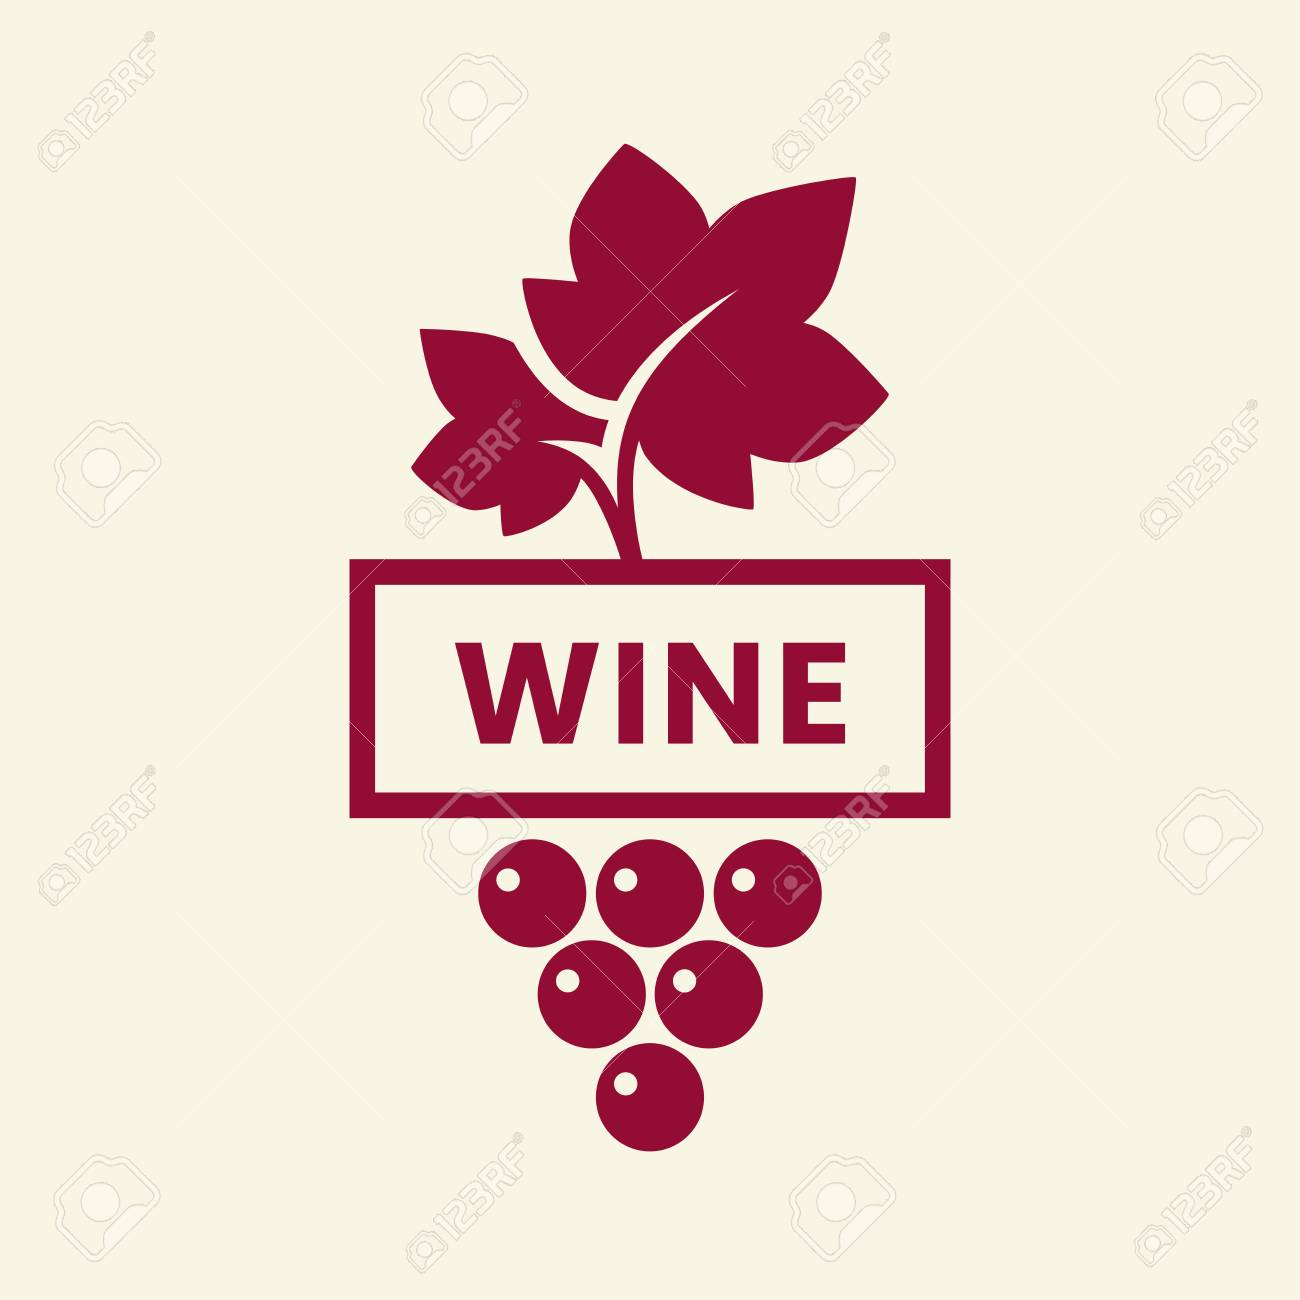 Modern wine vector logo sign for tavern, restaurant, house, shop, store, club and cellar isolated on light background. Premium quality vinery logotype illustration. Fashion brand badge design template. - 126498809